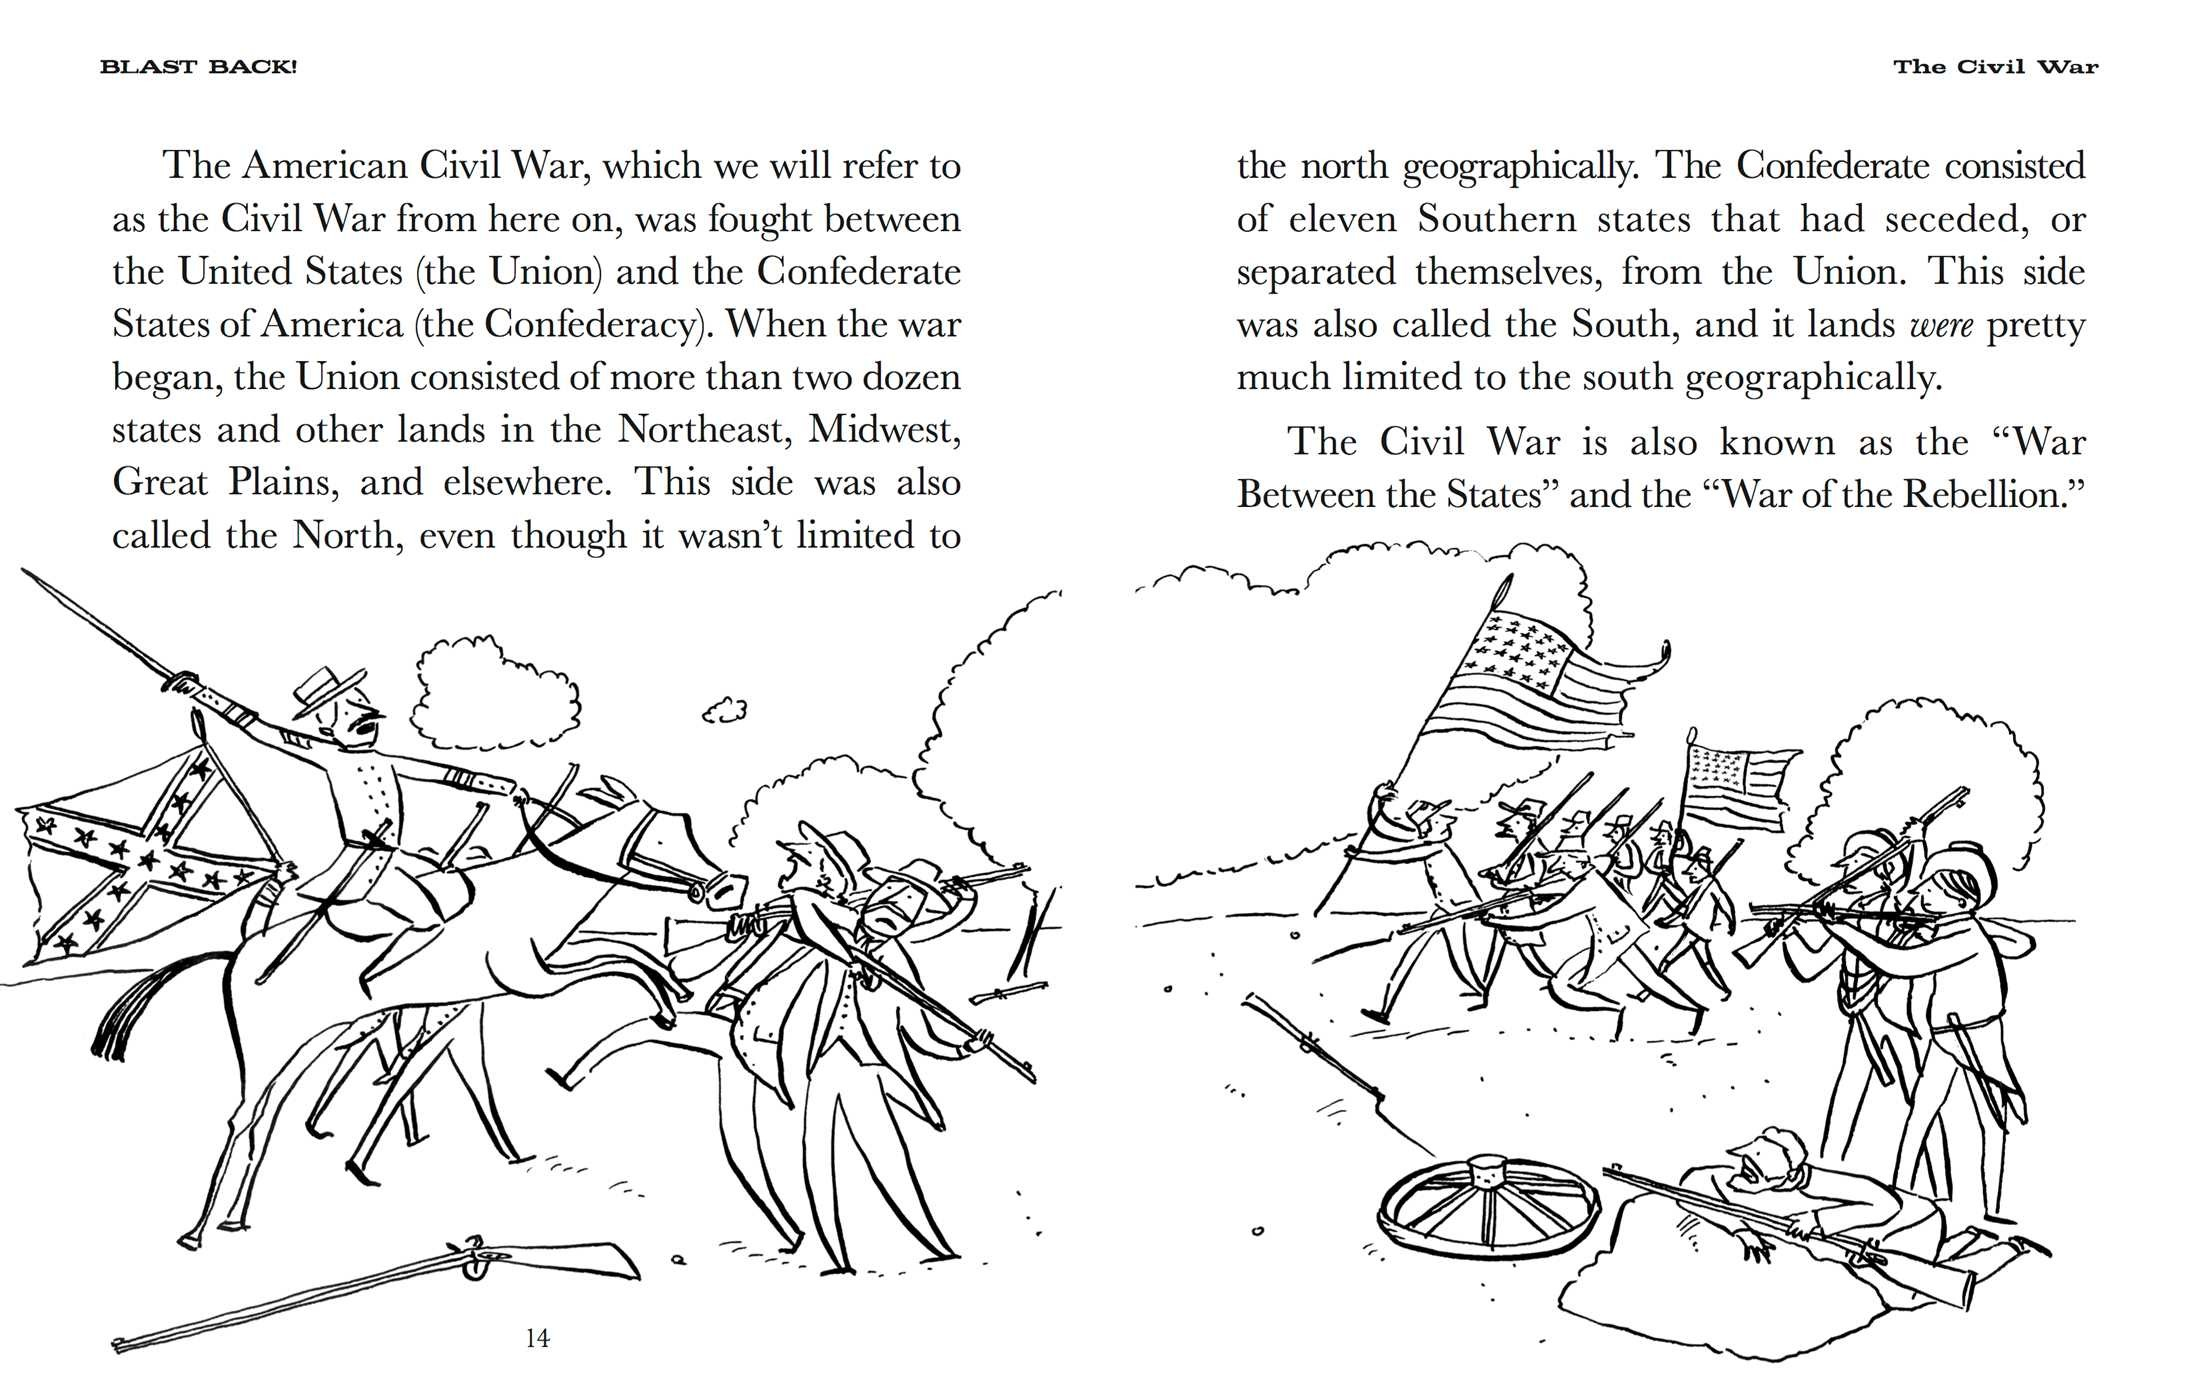 the civil war a war between north and south An analysis of the catalysts of the civil war, including northern and southern views of the events and president lincoln's statements against secession.